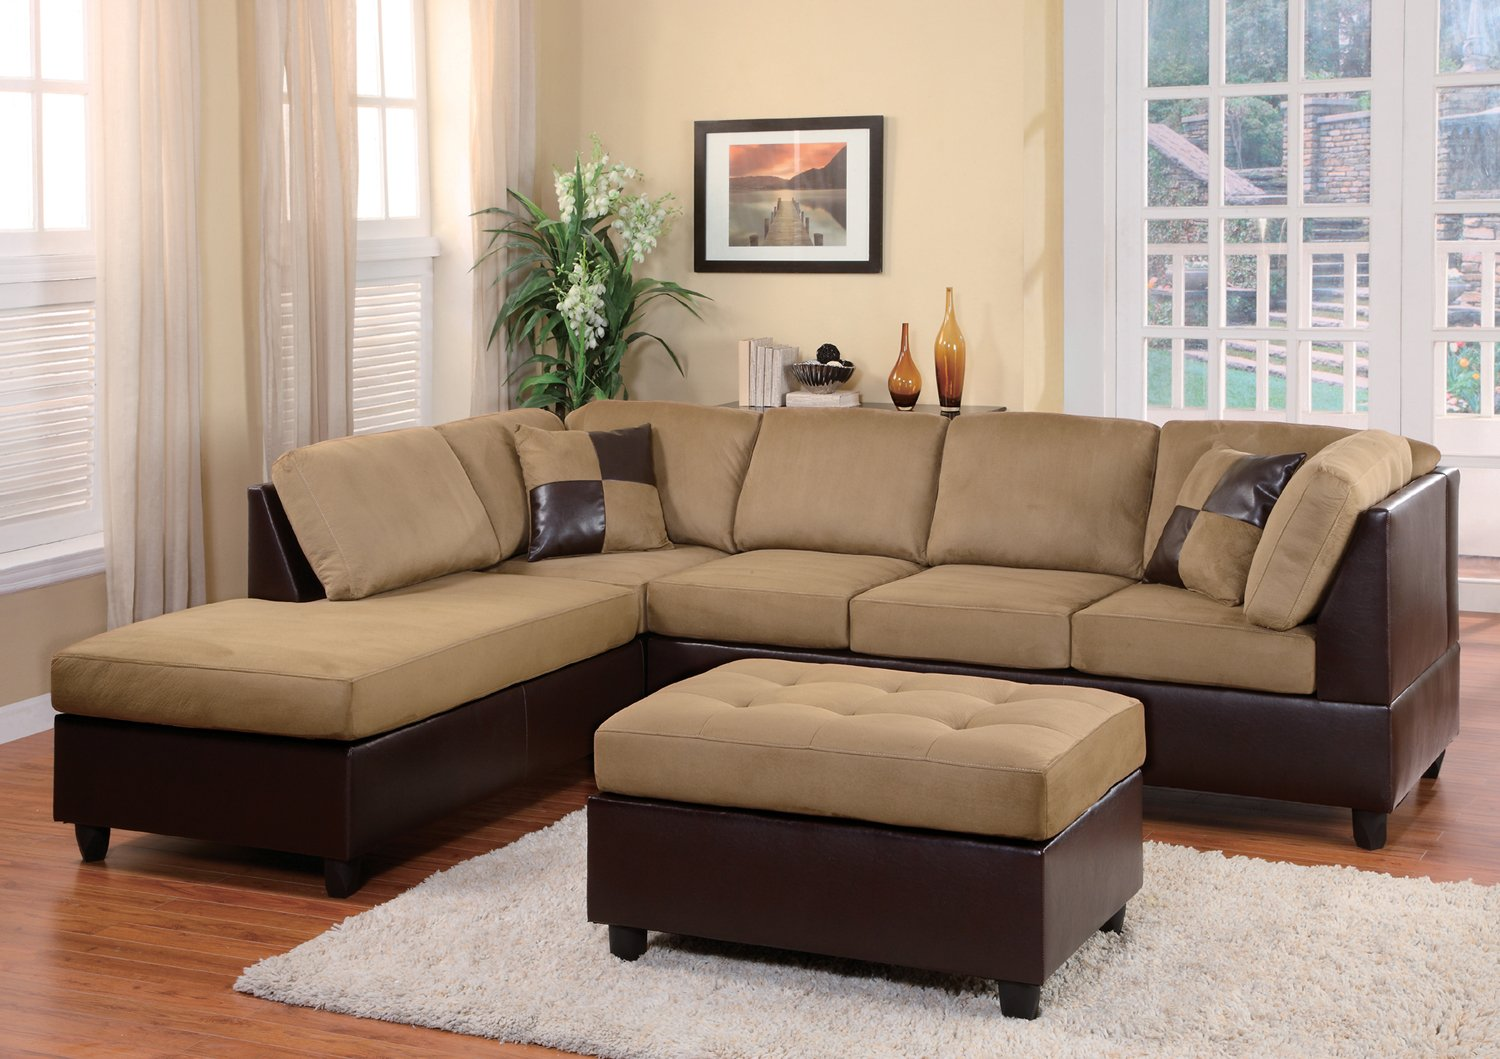 Homelegance 9909BR Comfort Living Sectional Collection with 2 Pillows, Brown Rhino Microfiber and Dark Brown Faux Leather